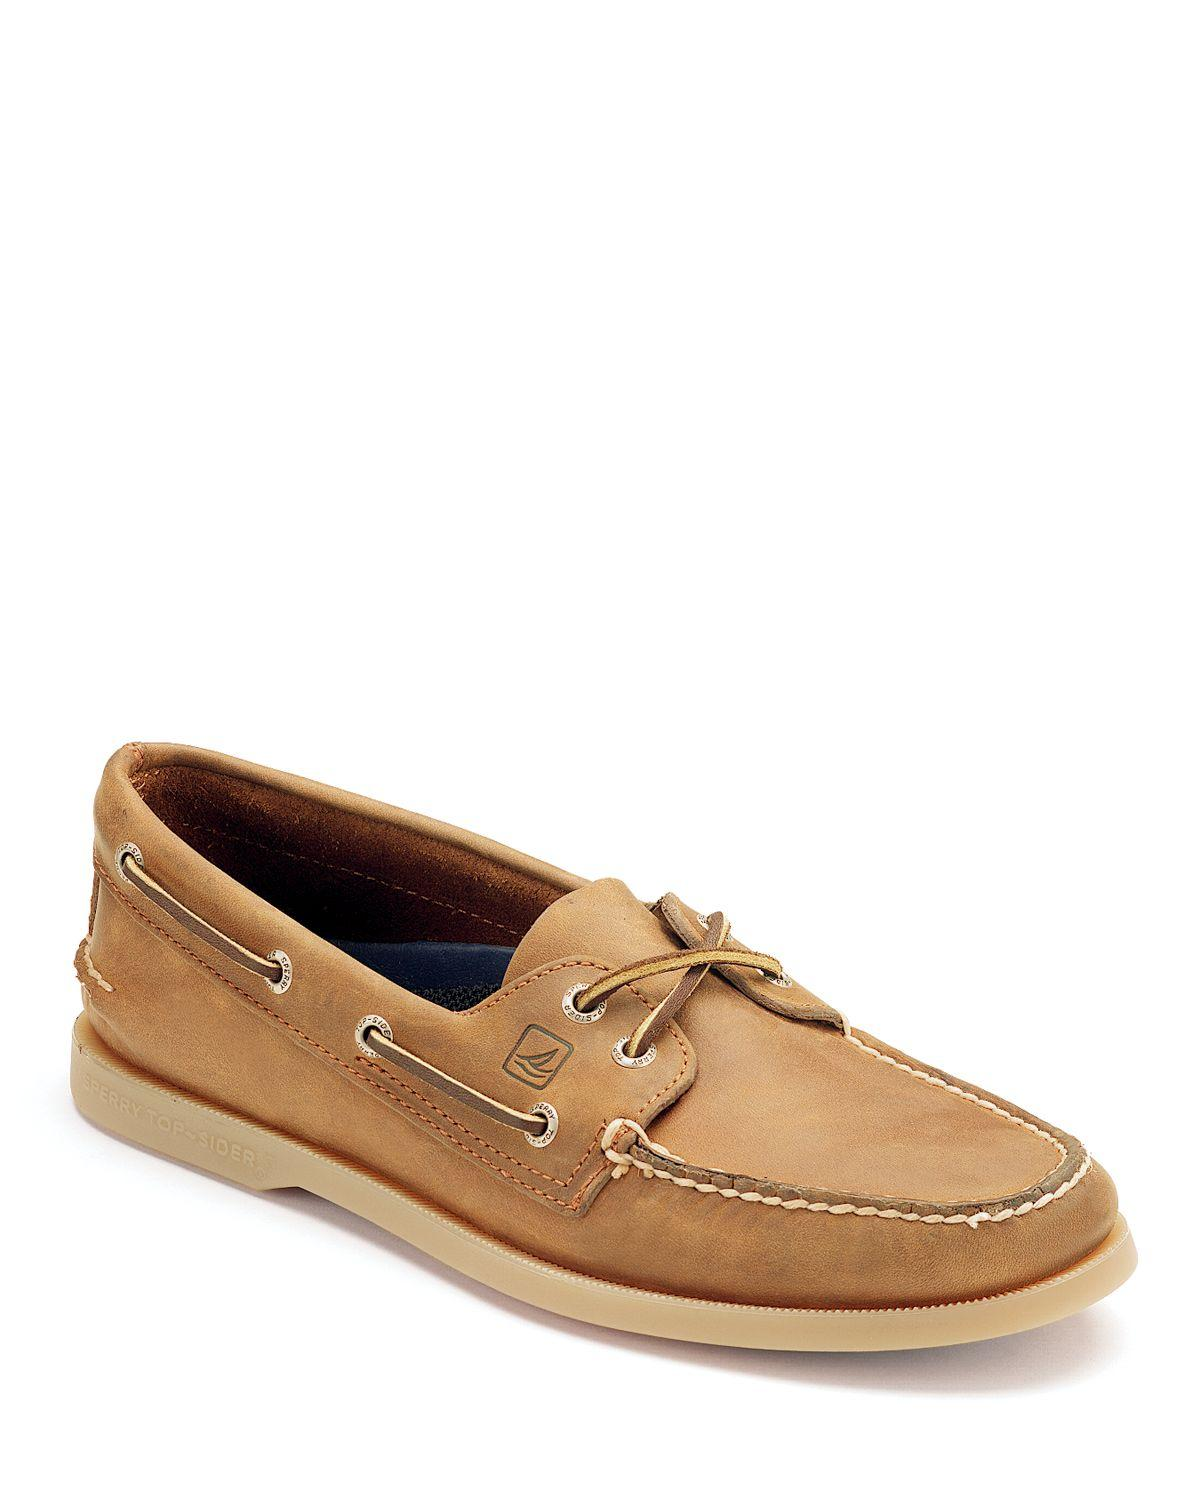 Sperry Men S Authentic Original Two Eye Boat Shoes